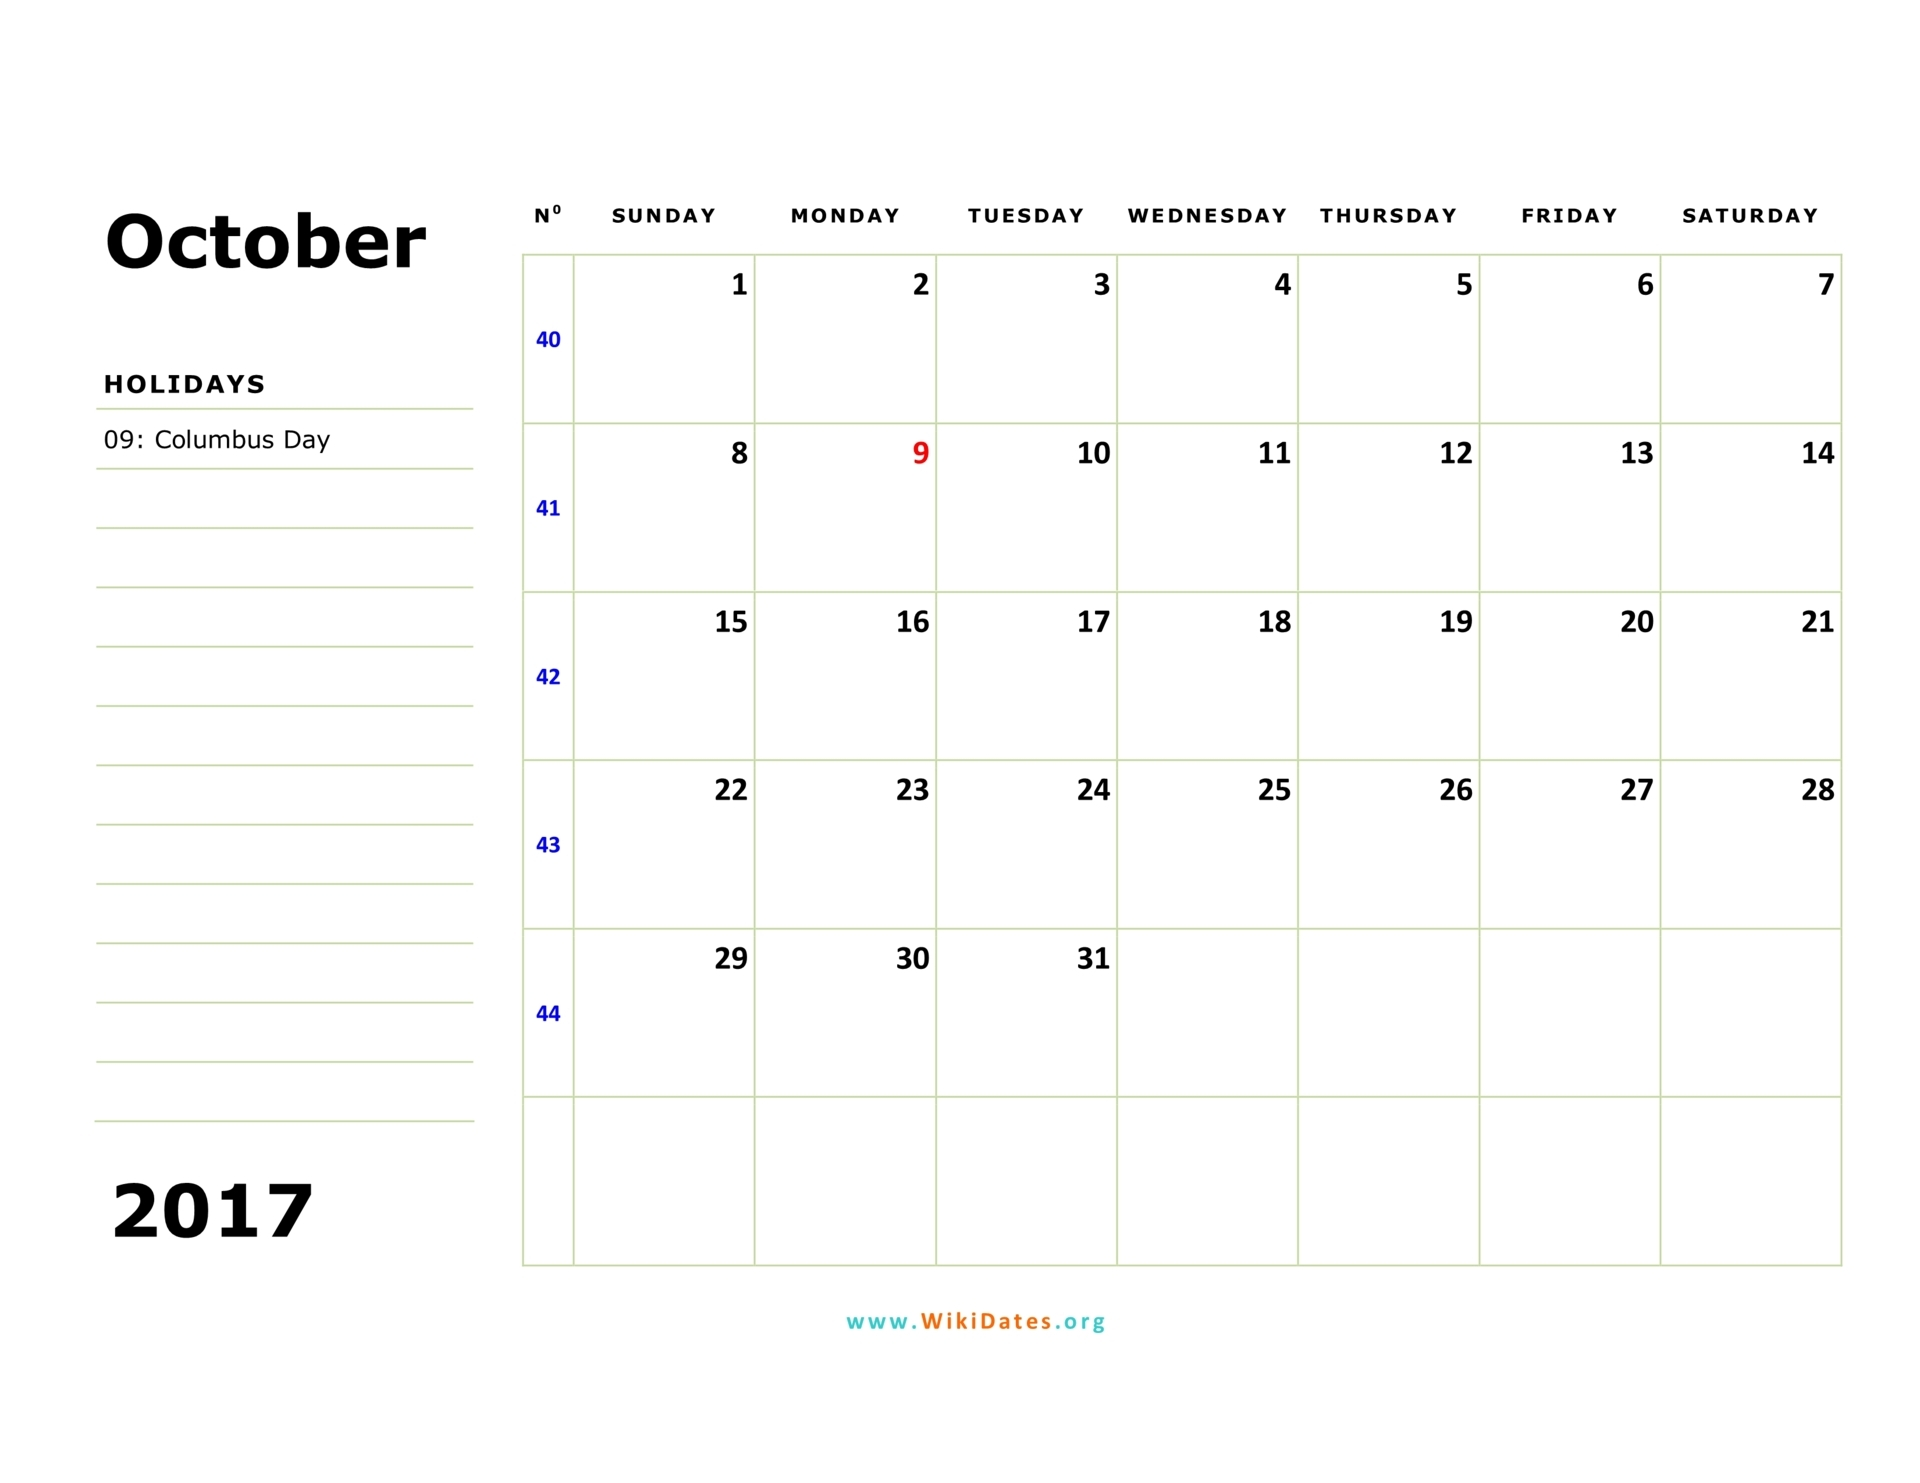 2017 Holidays, Daily Calendar From Holiday Insights